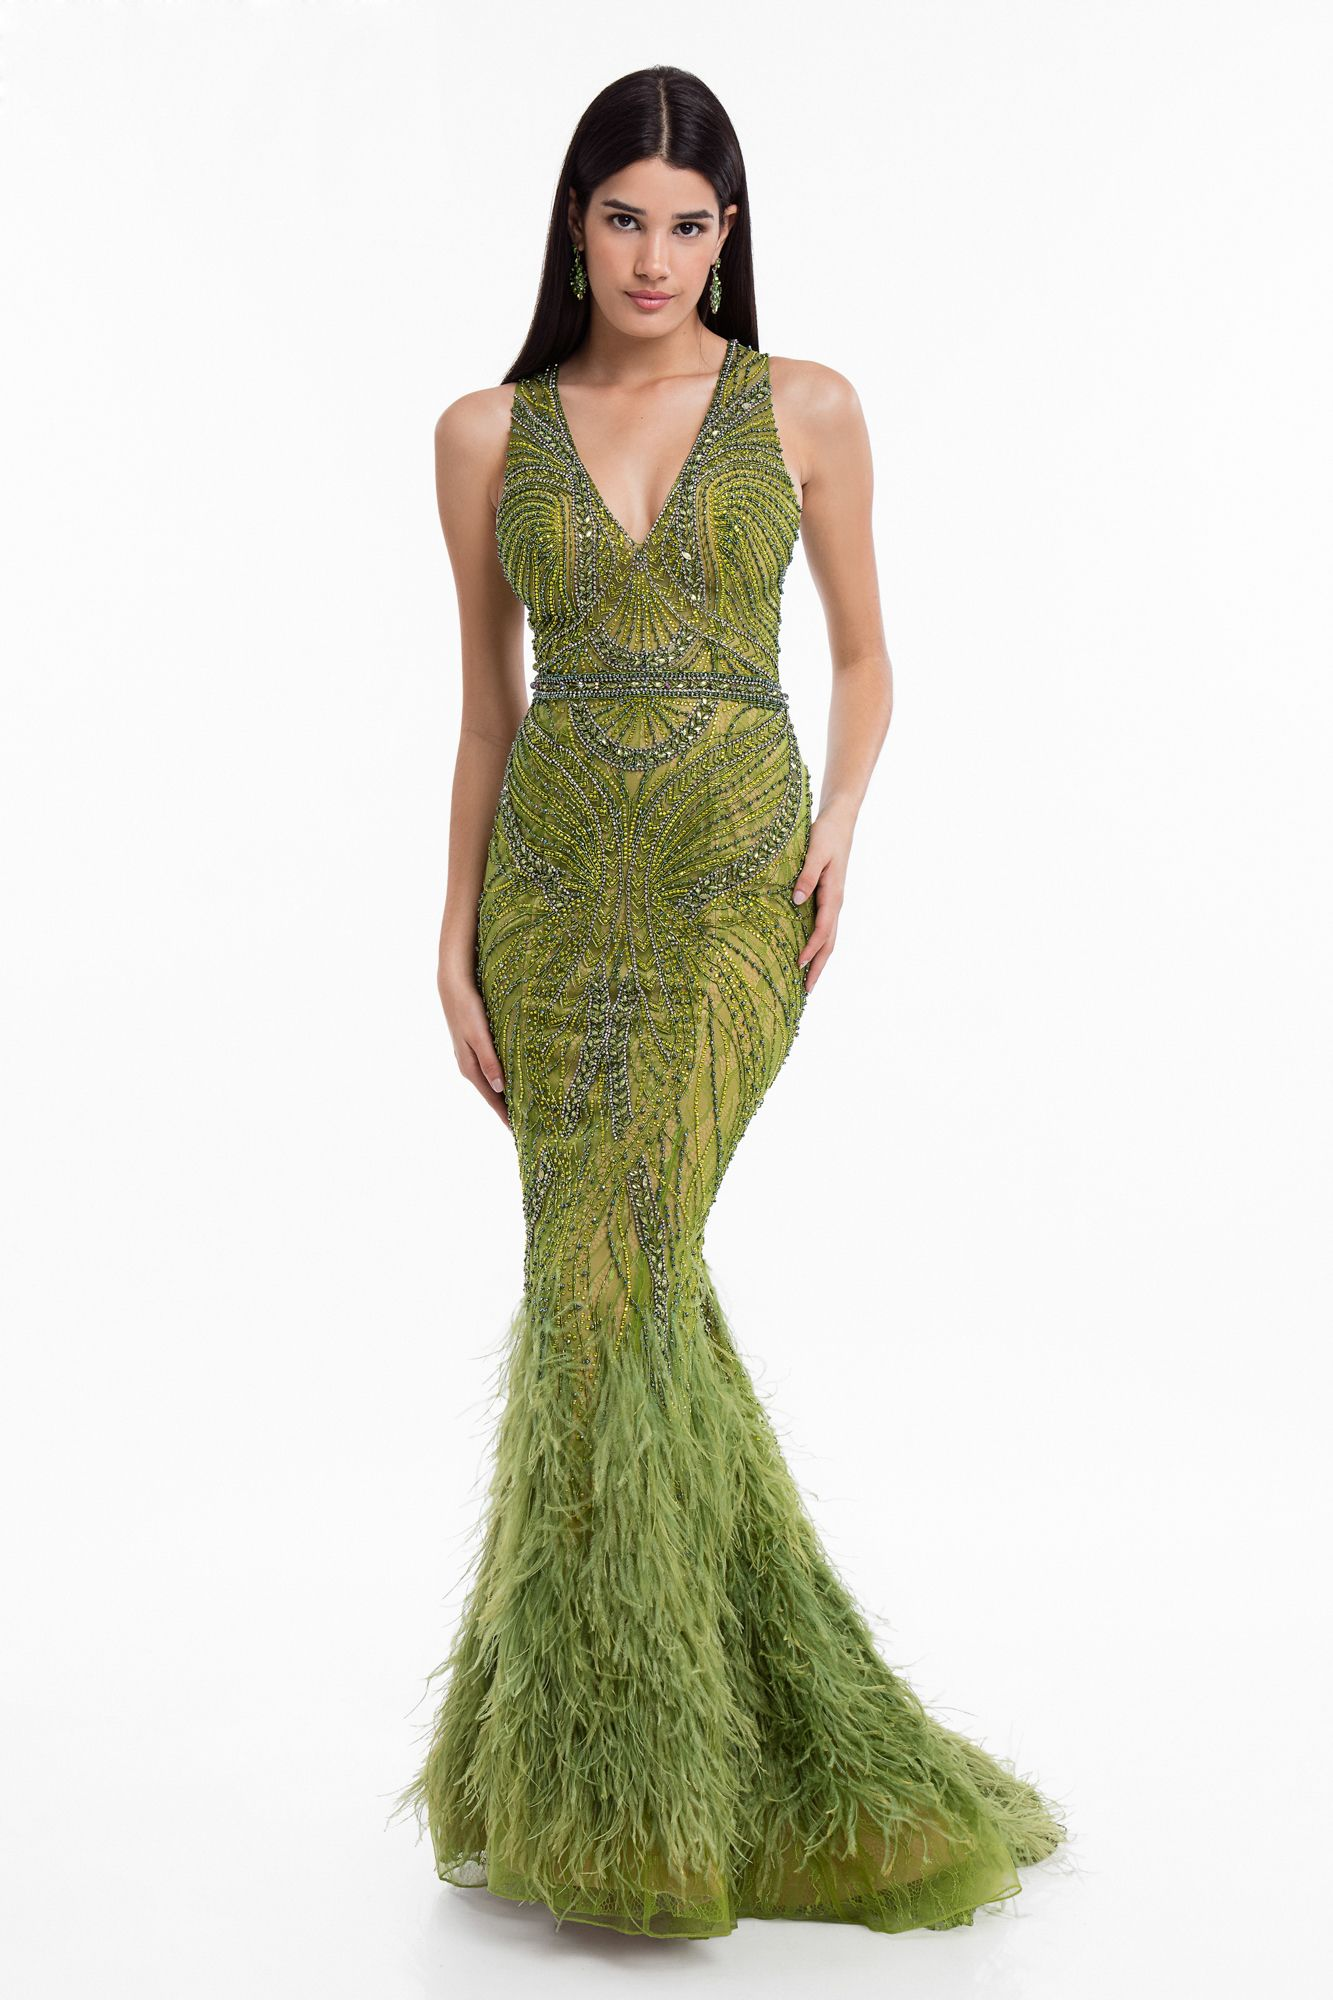 bd67f451194 Terani Couture Homecoming Dresses - Gomes Weine AG